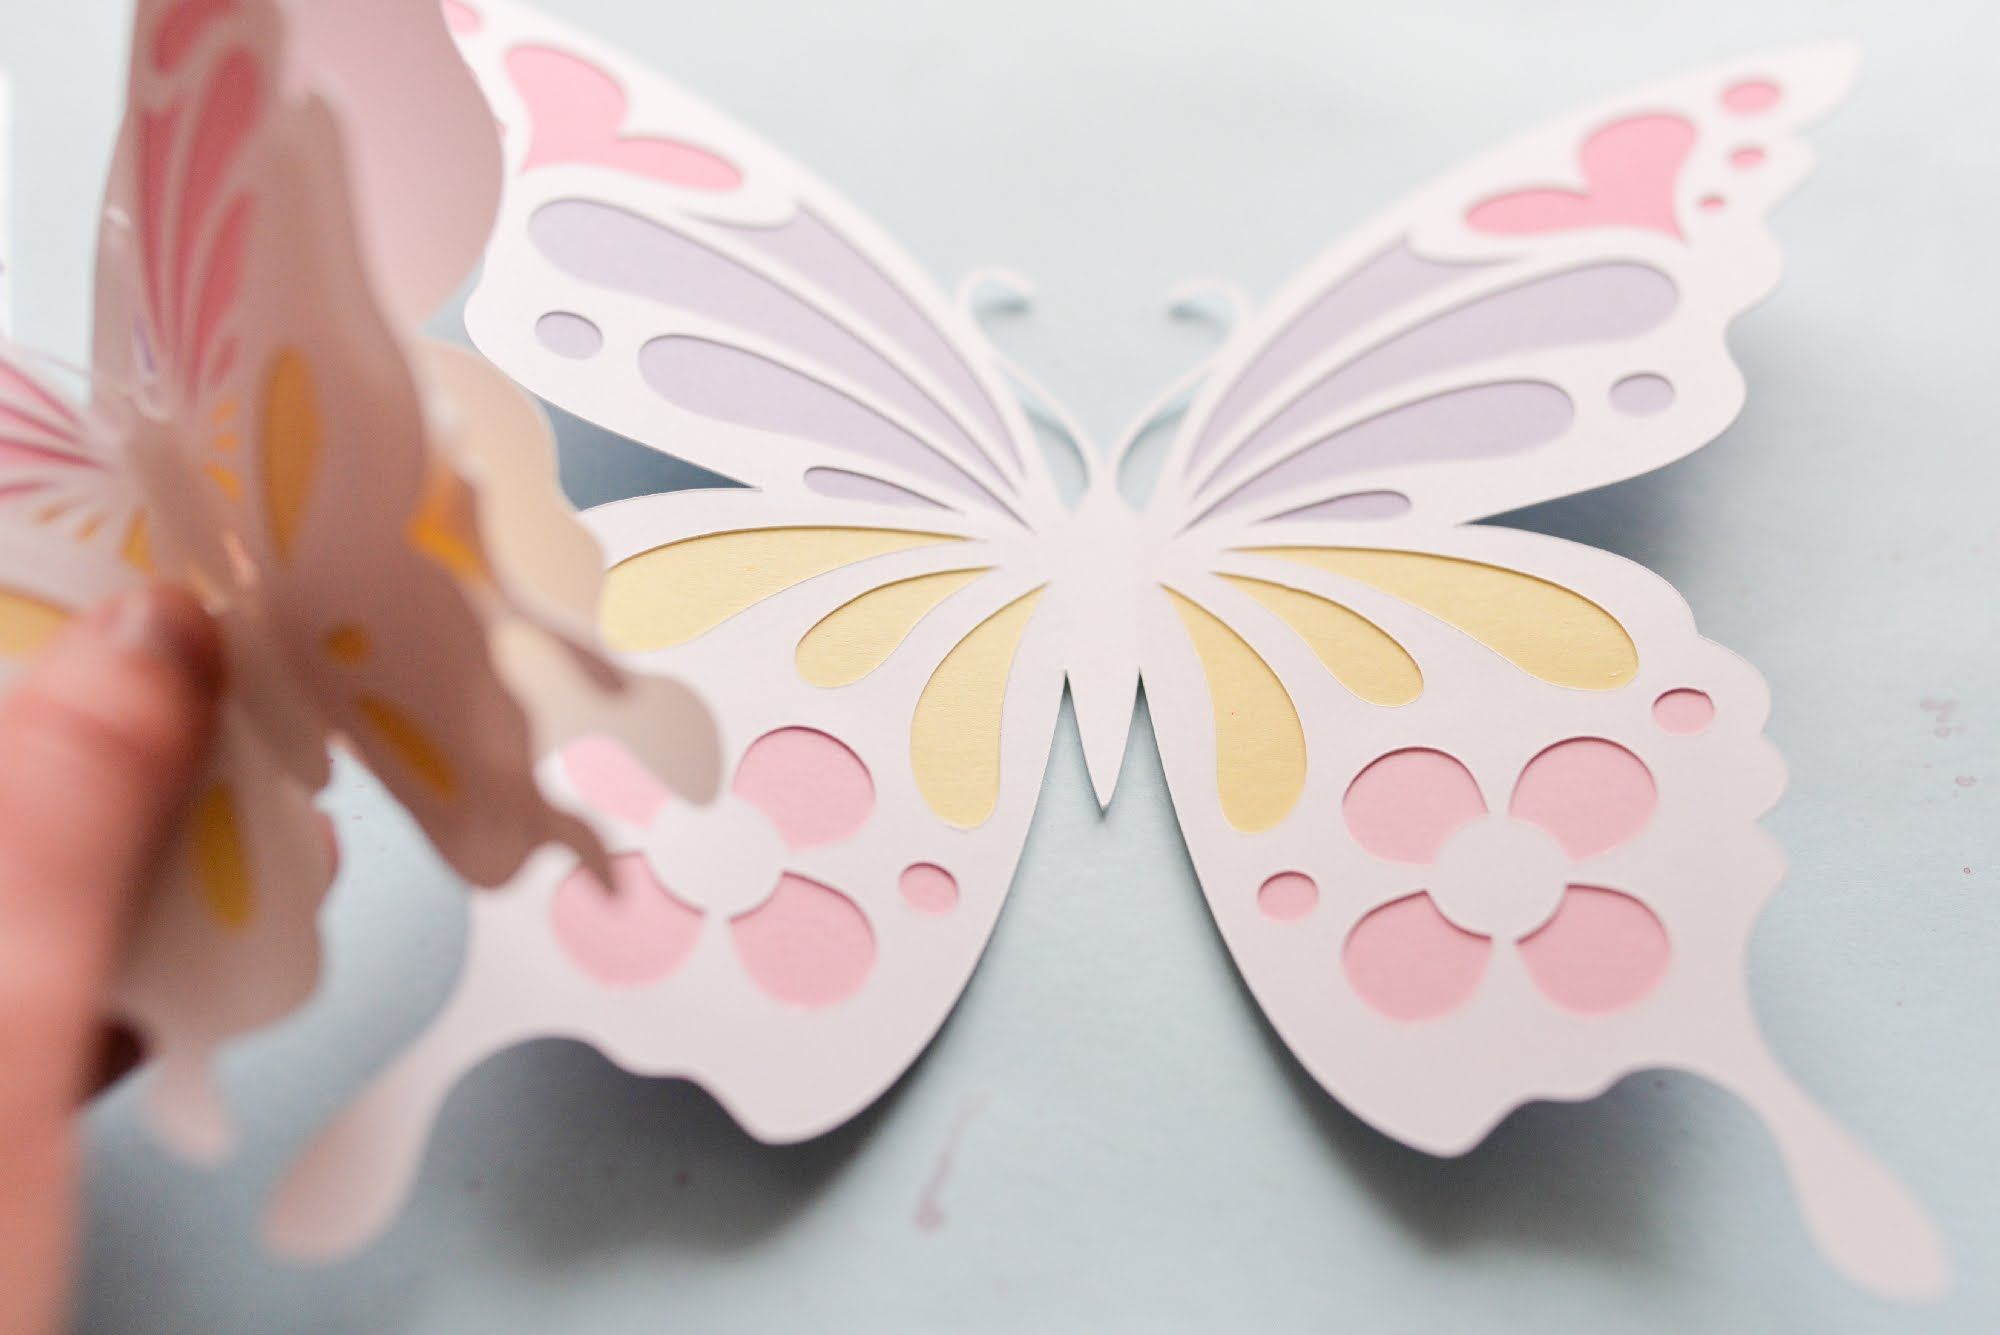 Pin by perkasa on Video Origami | Pinterest | How to make ... - photo#33